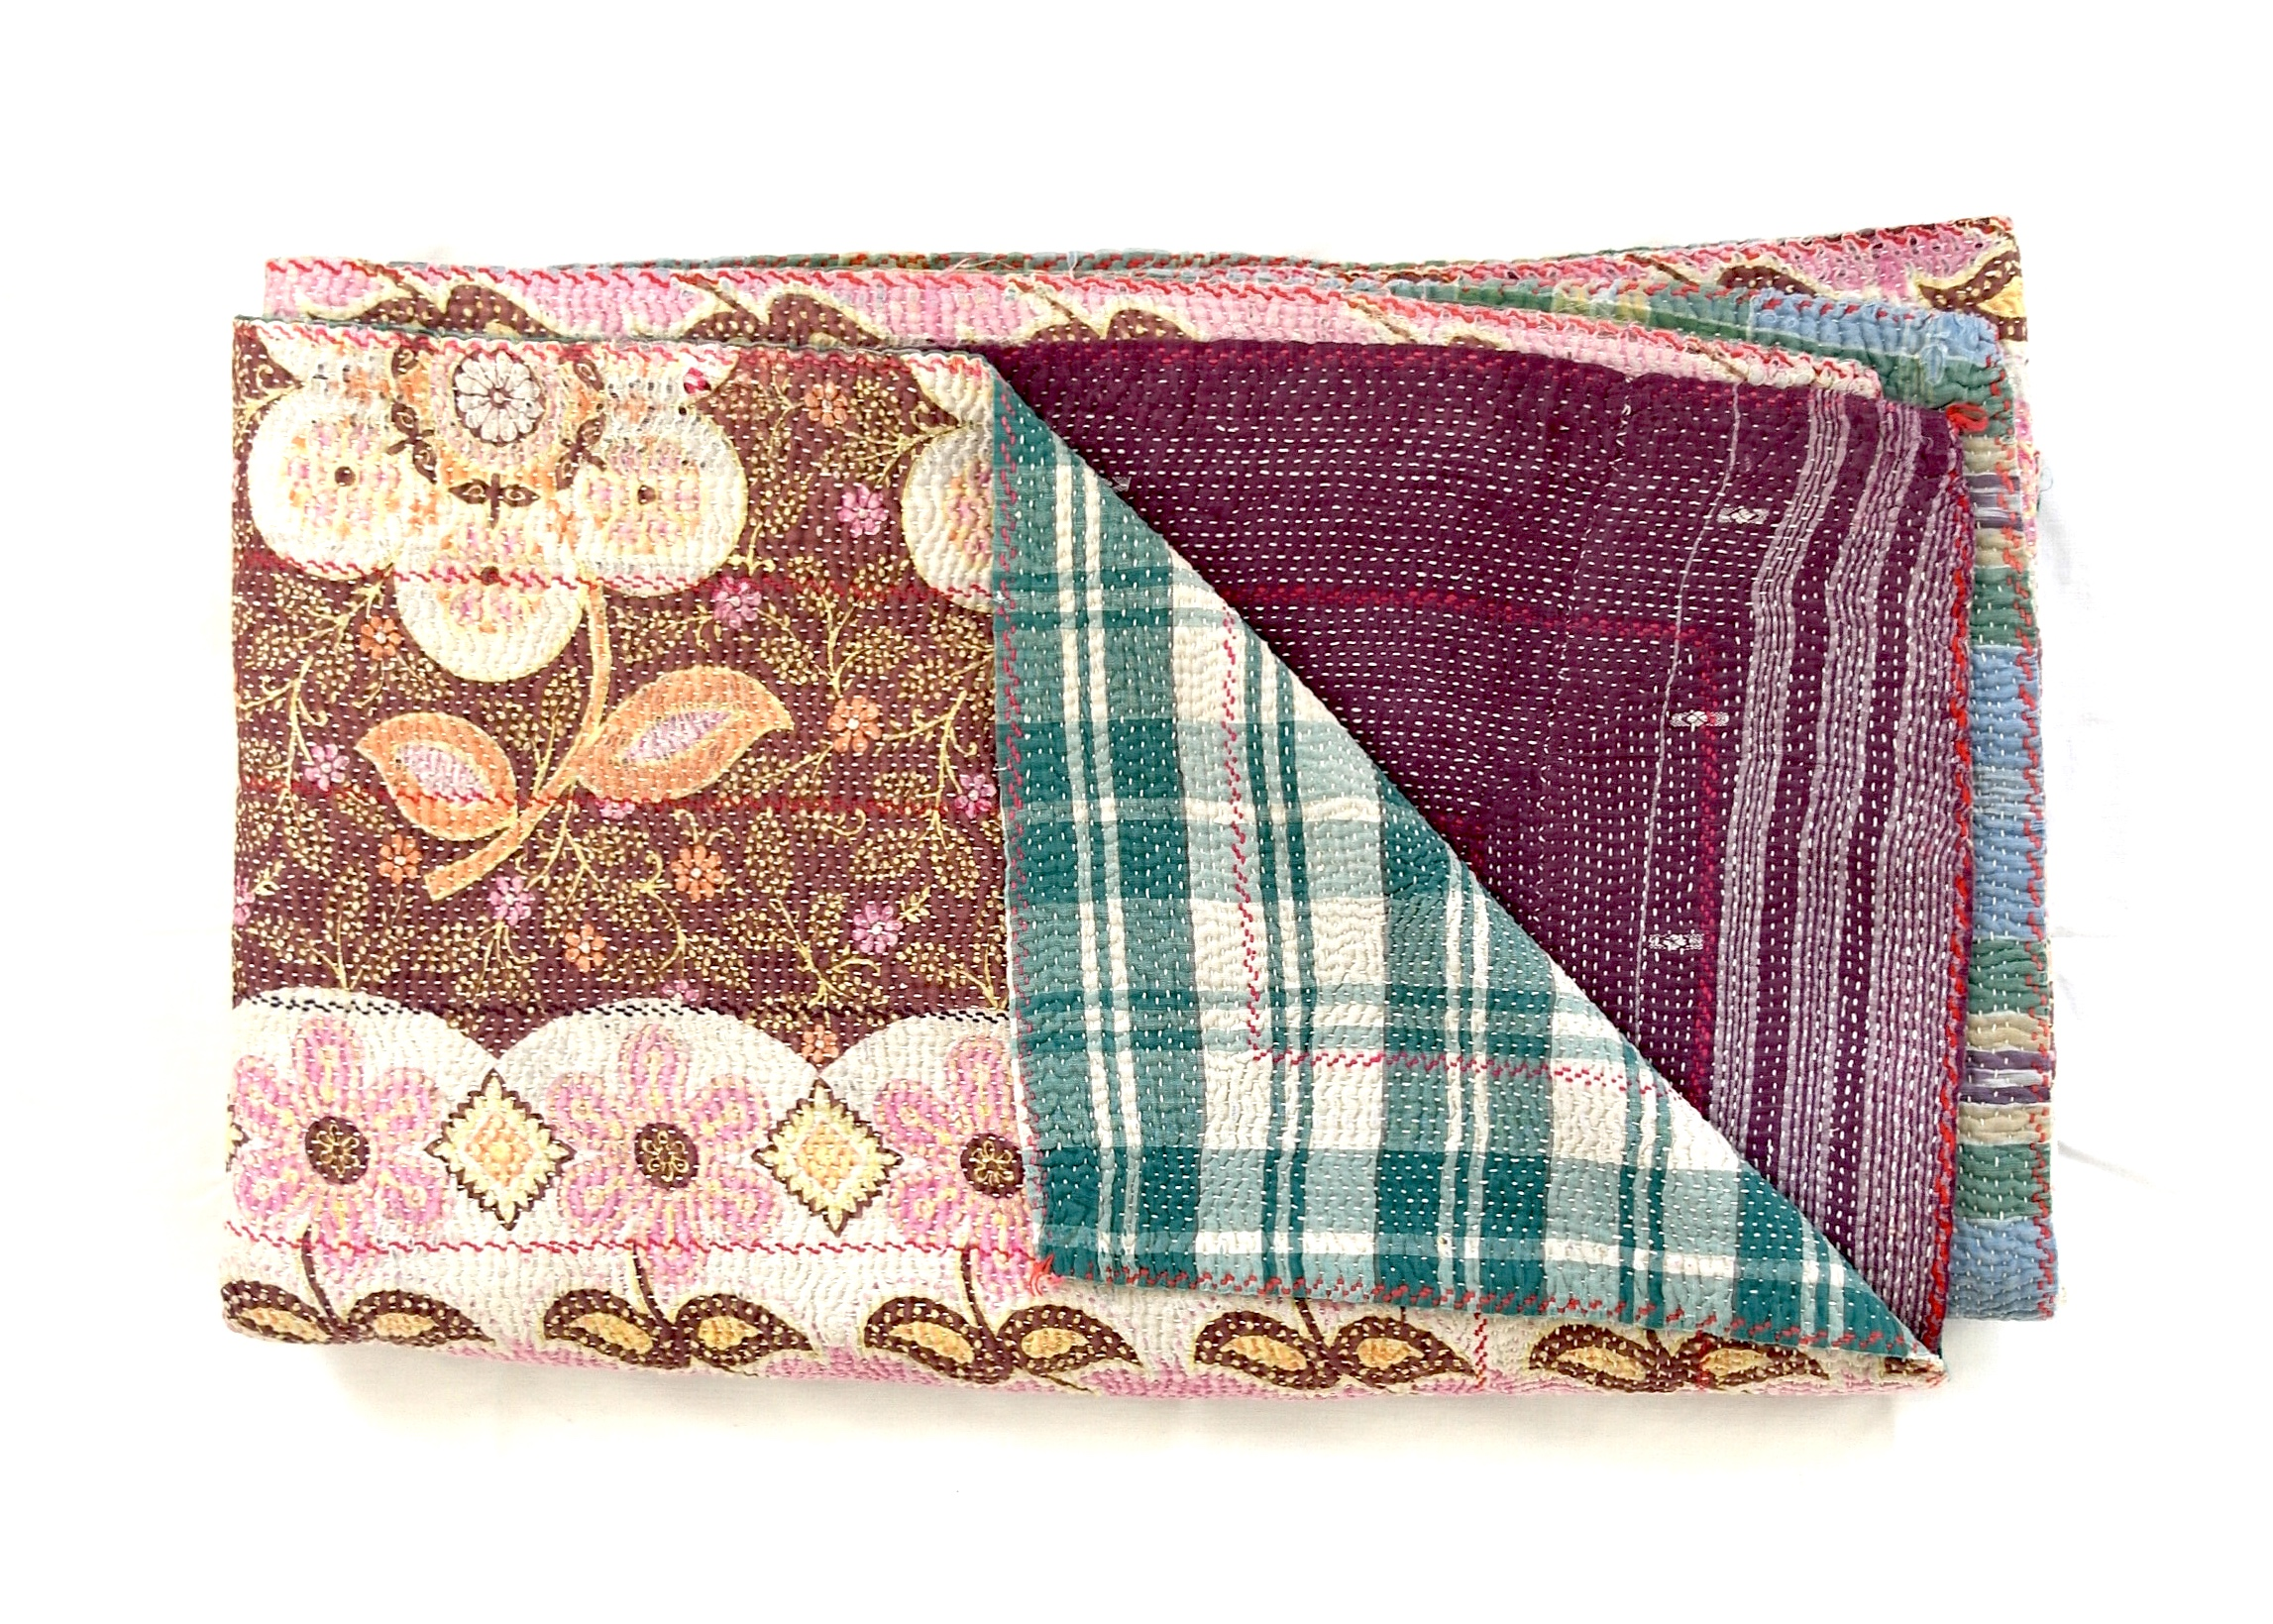 Kantha quilt with a bold pattern on one side and a checkered pattern on the reverse side.